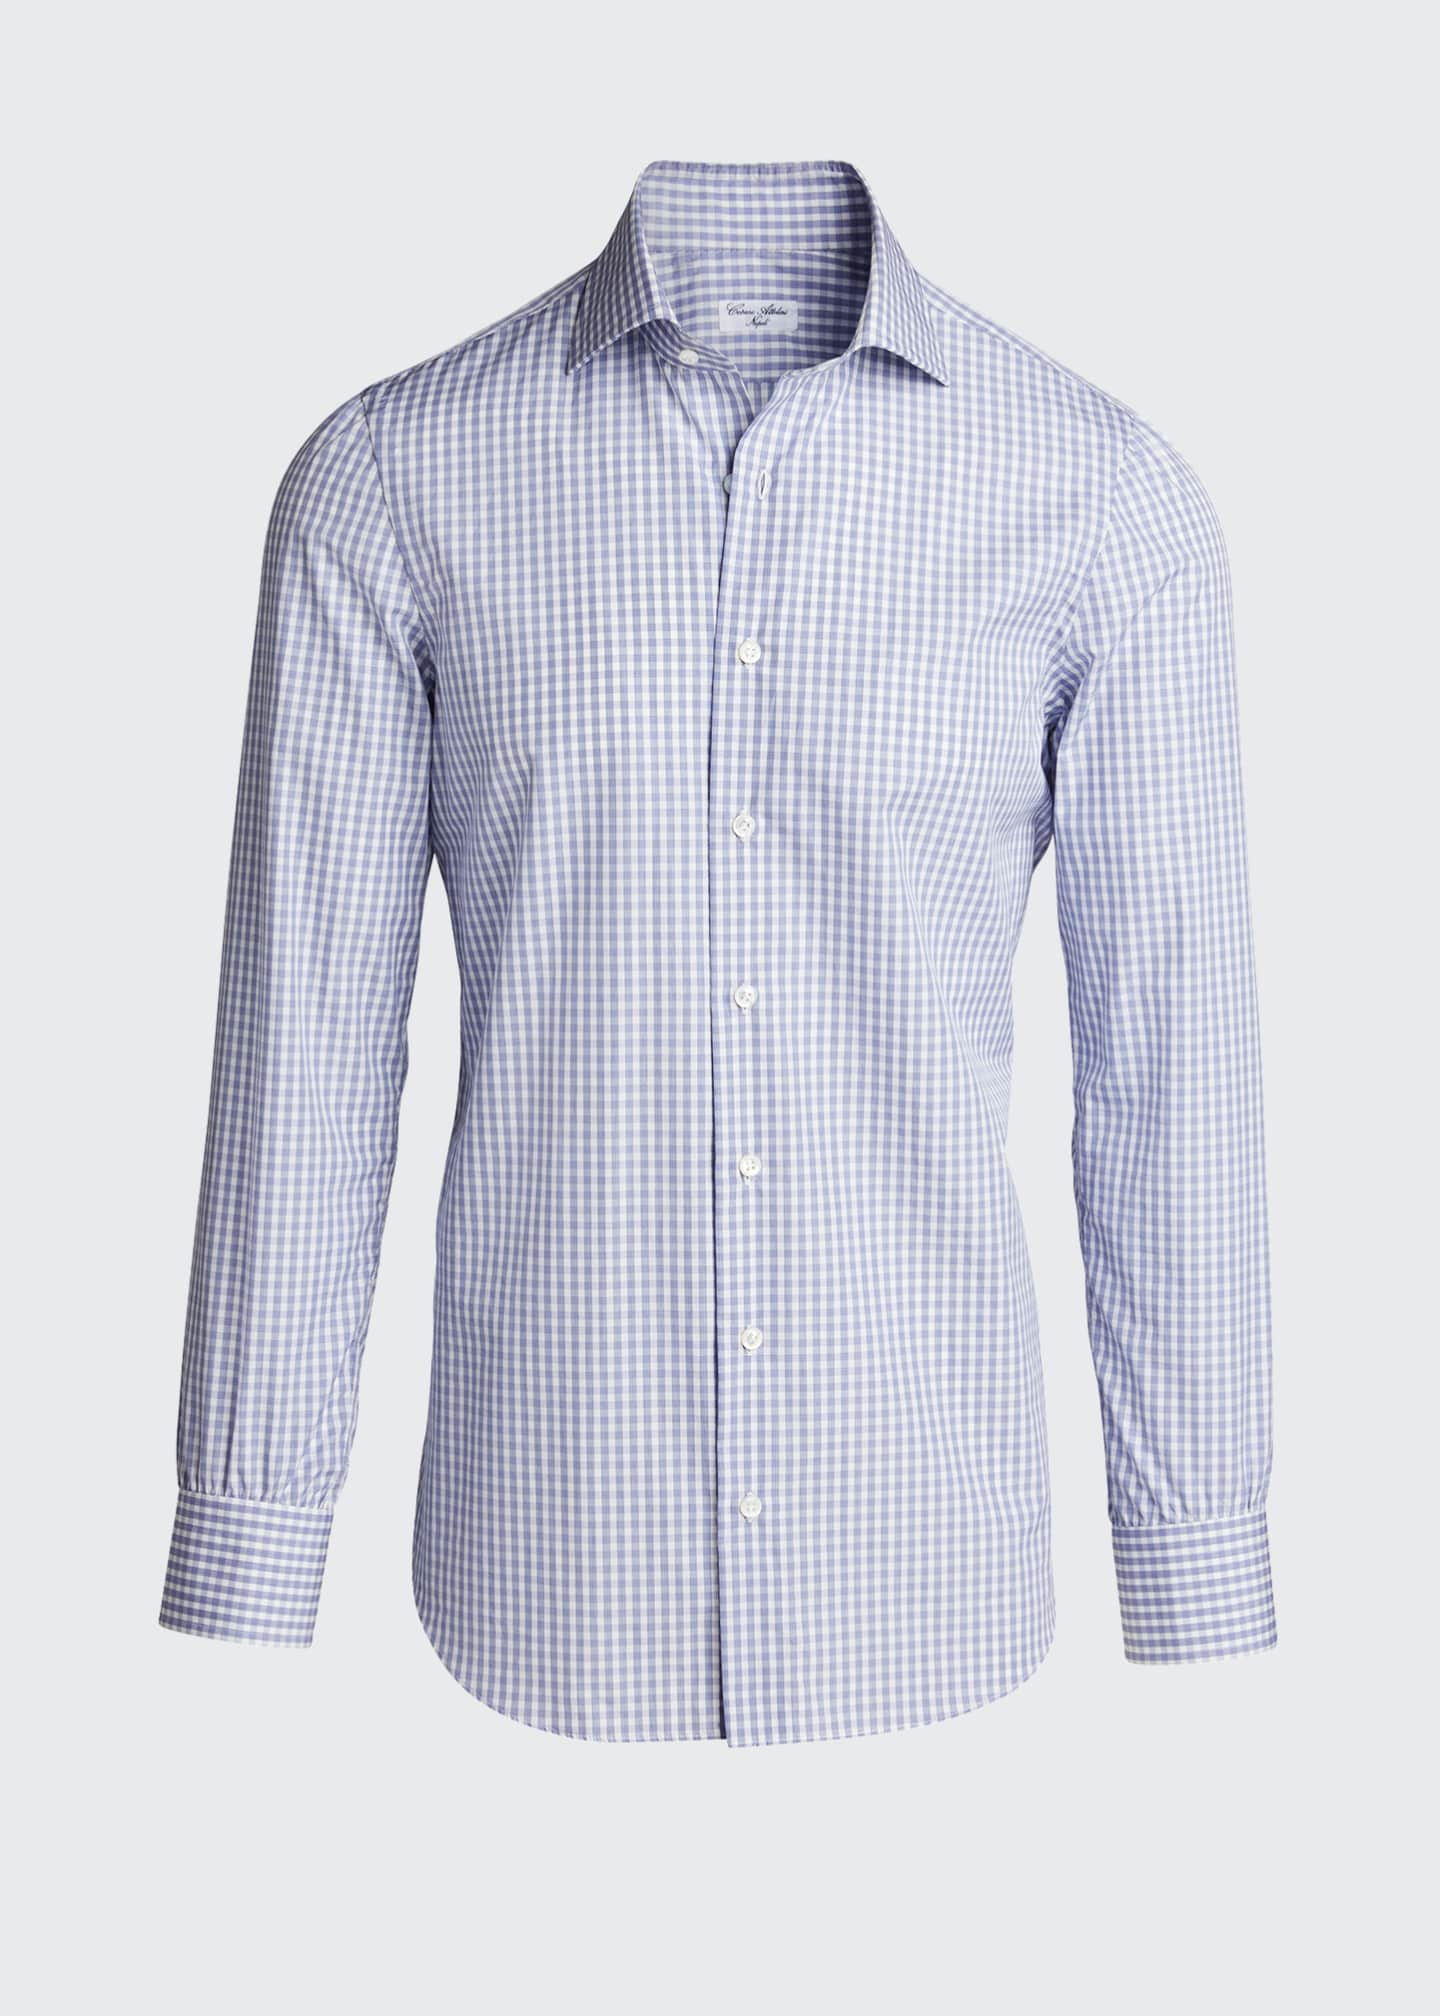 Image 5 of 5: Men's Check Cotton Sport Shirt